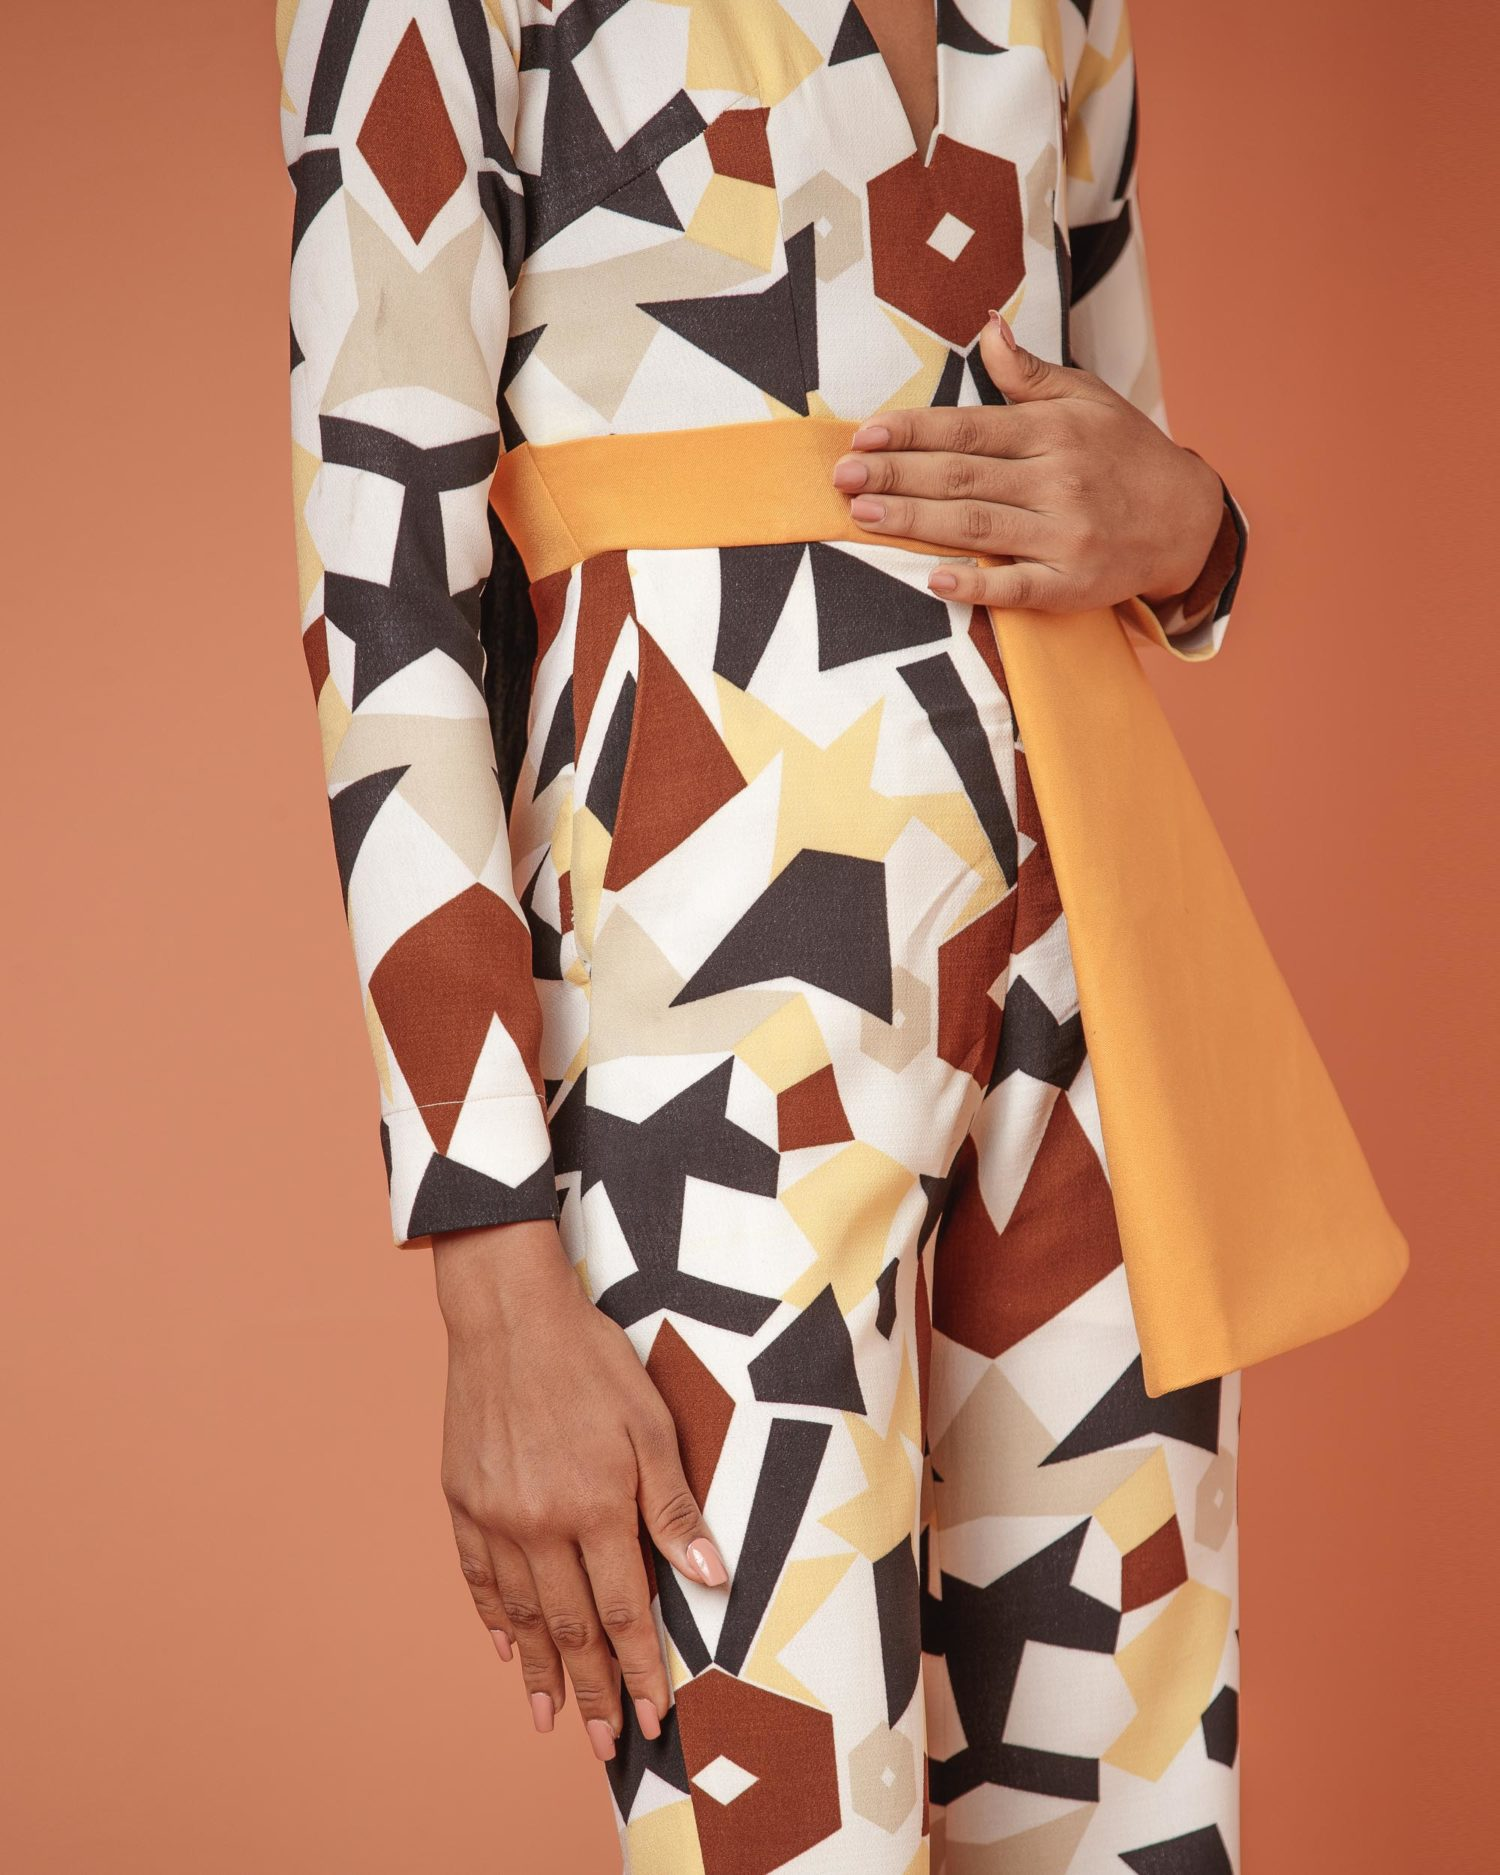 Knanfe: The New Uber-Chic Brand You'll Actually Love